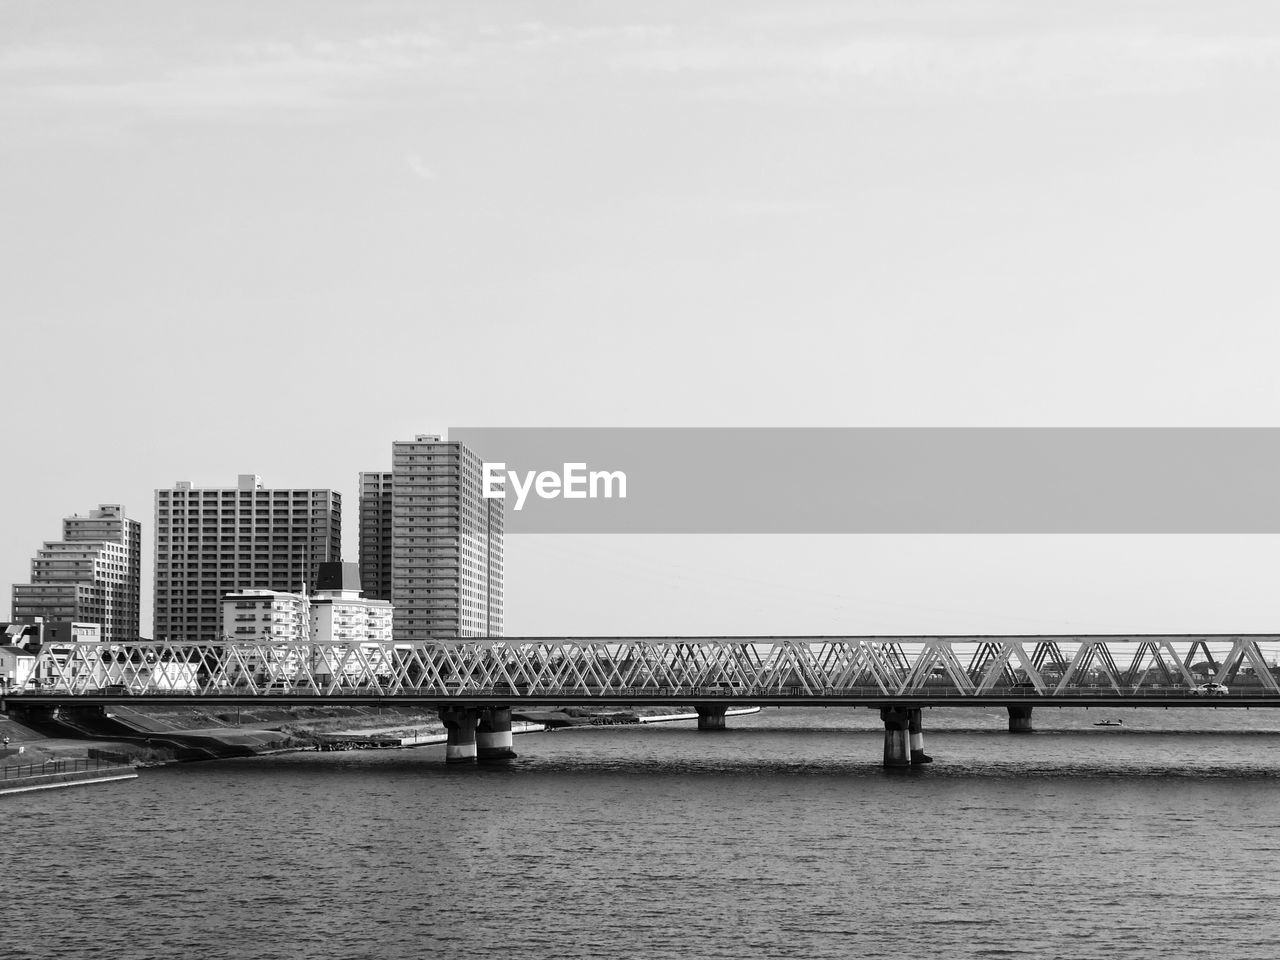 architecture, built structure, building exterior, bridge - man made structure, city, copy space, connection, skyscraper, water, outdoors, river, clear sky, waterfront, day, modern, no people, sky, travel destinations, nature, cityscape